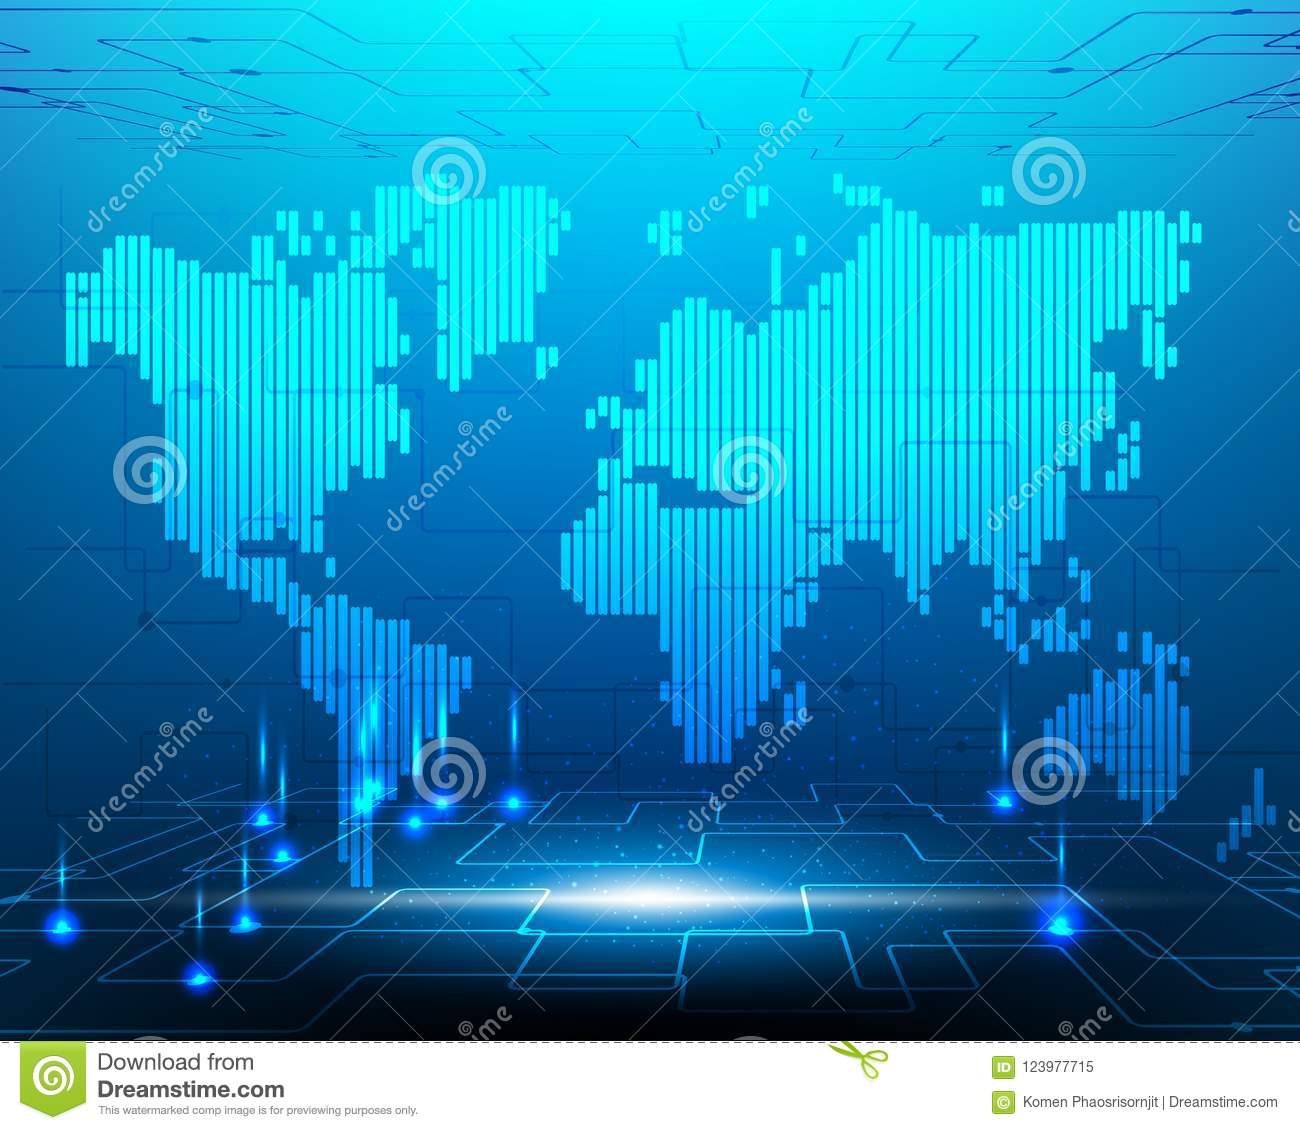 World map cyber system transformation internet fiber optic cable